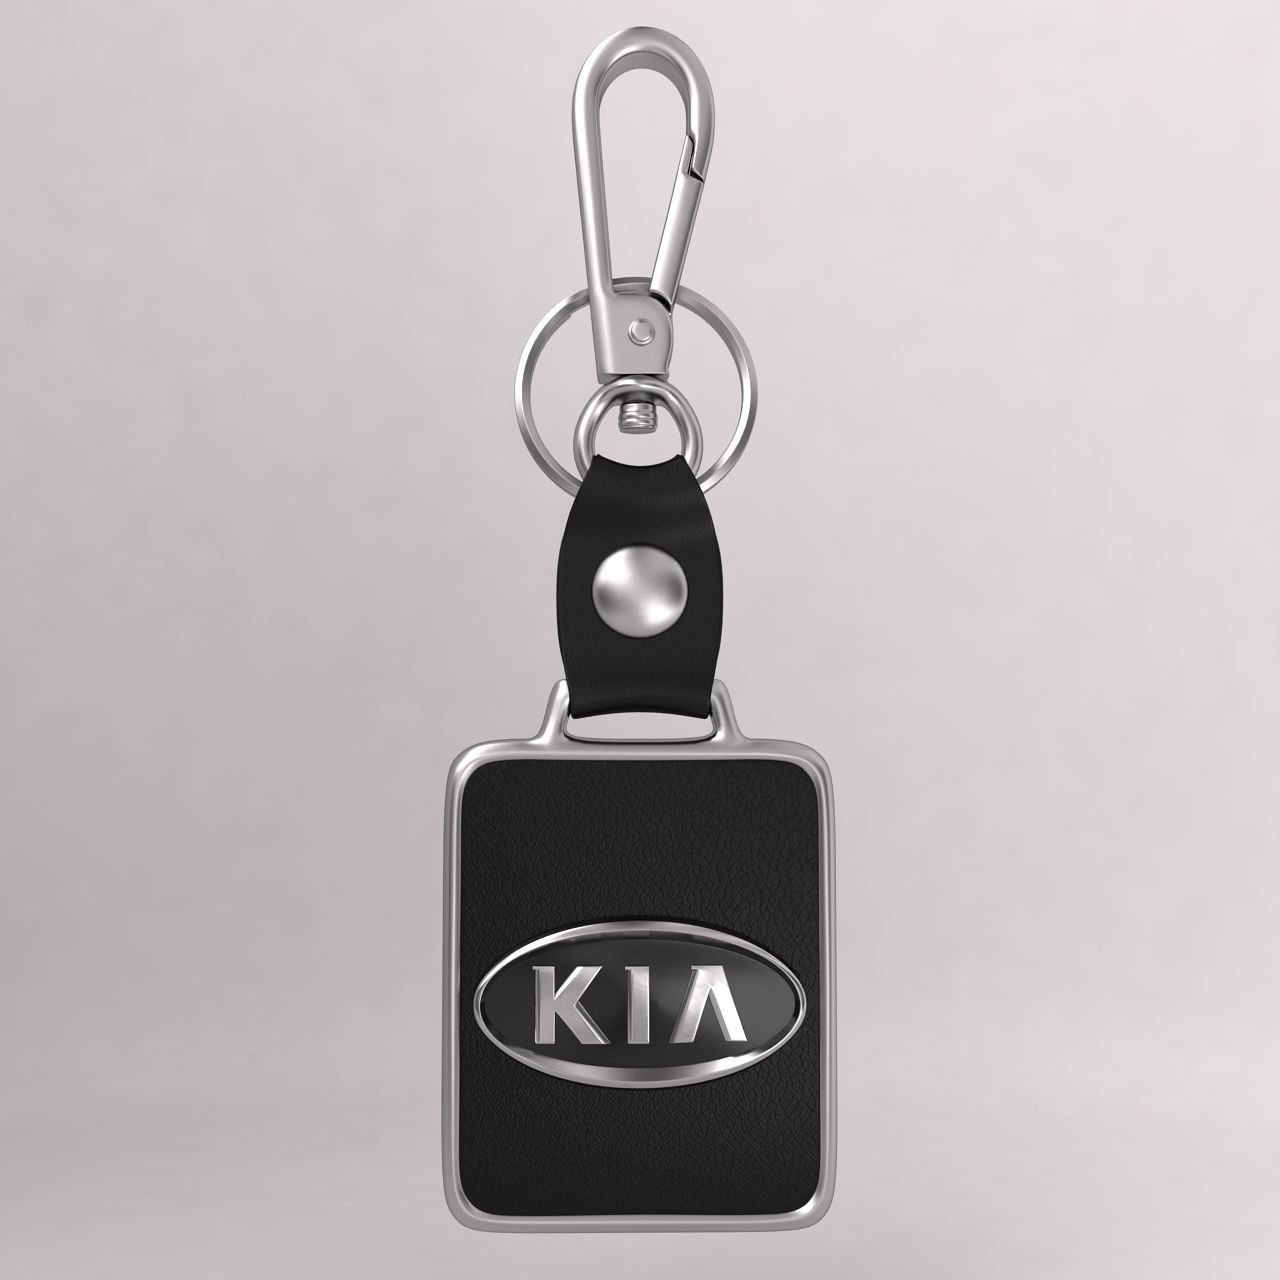 Kia Car Logo Keychain 3d Model Cgtrader